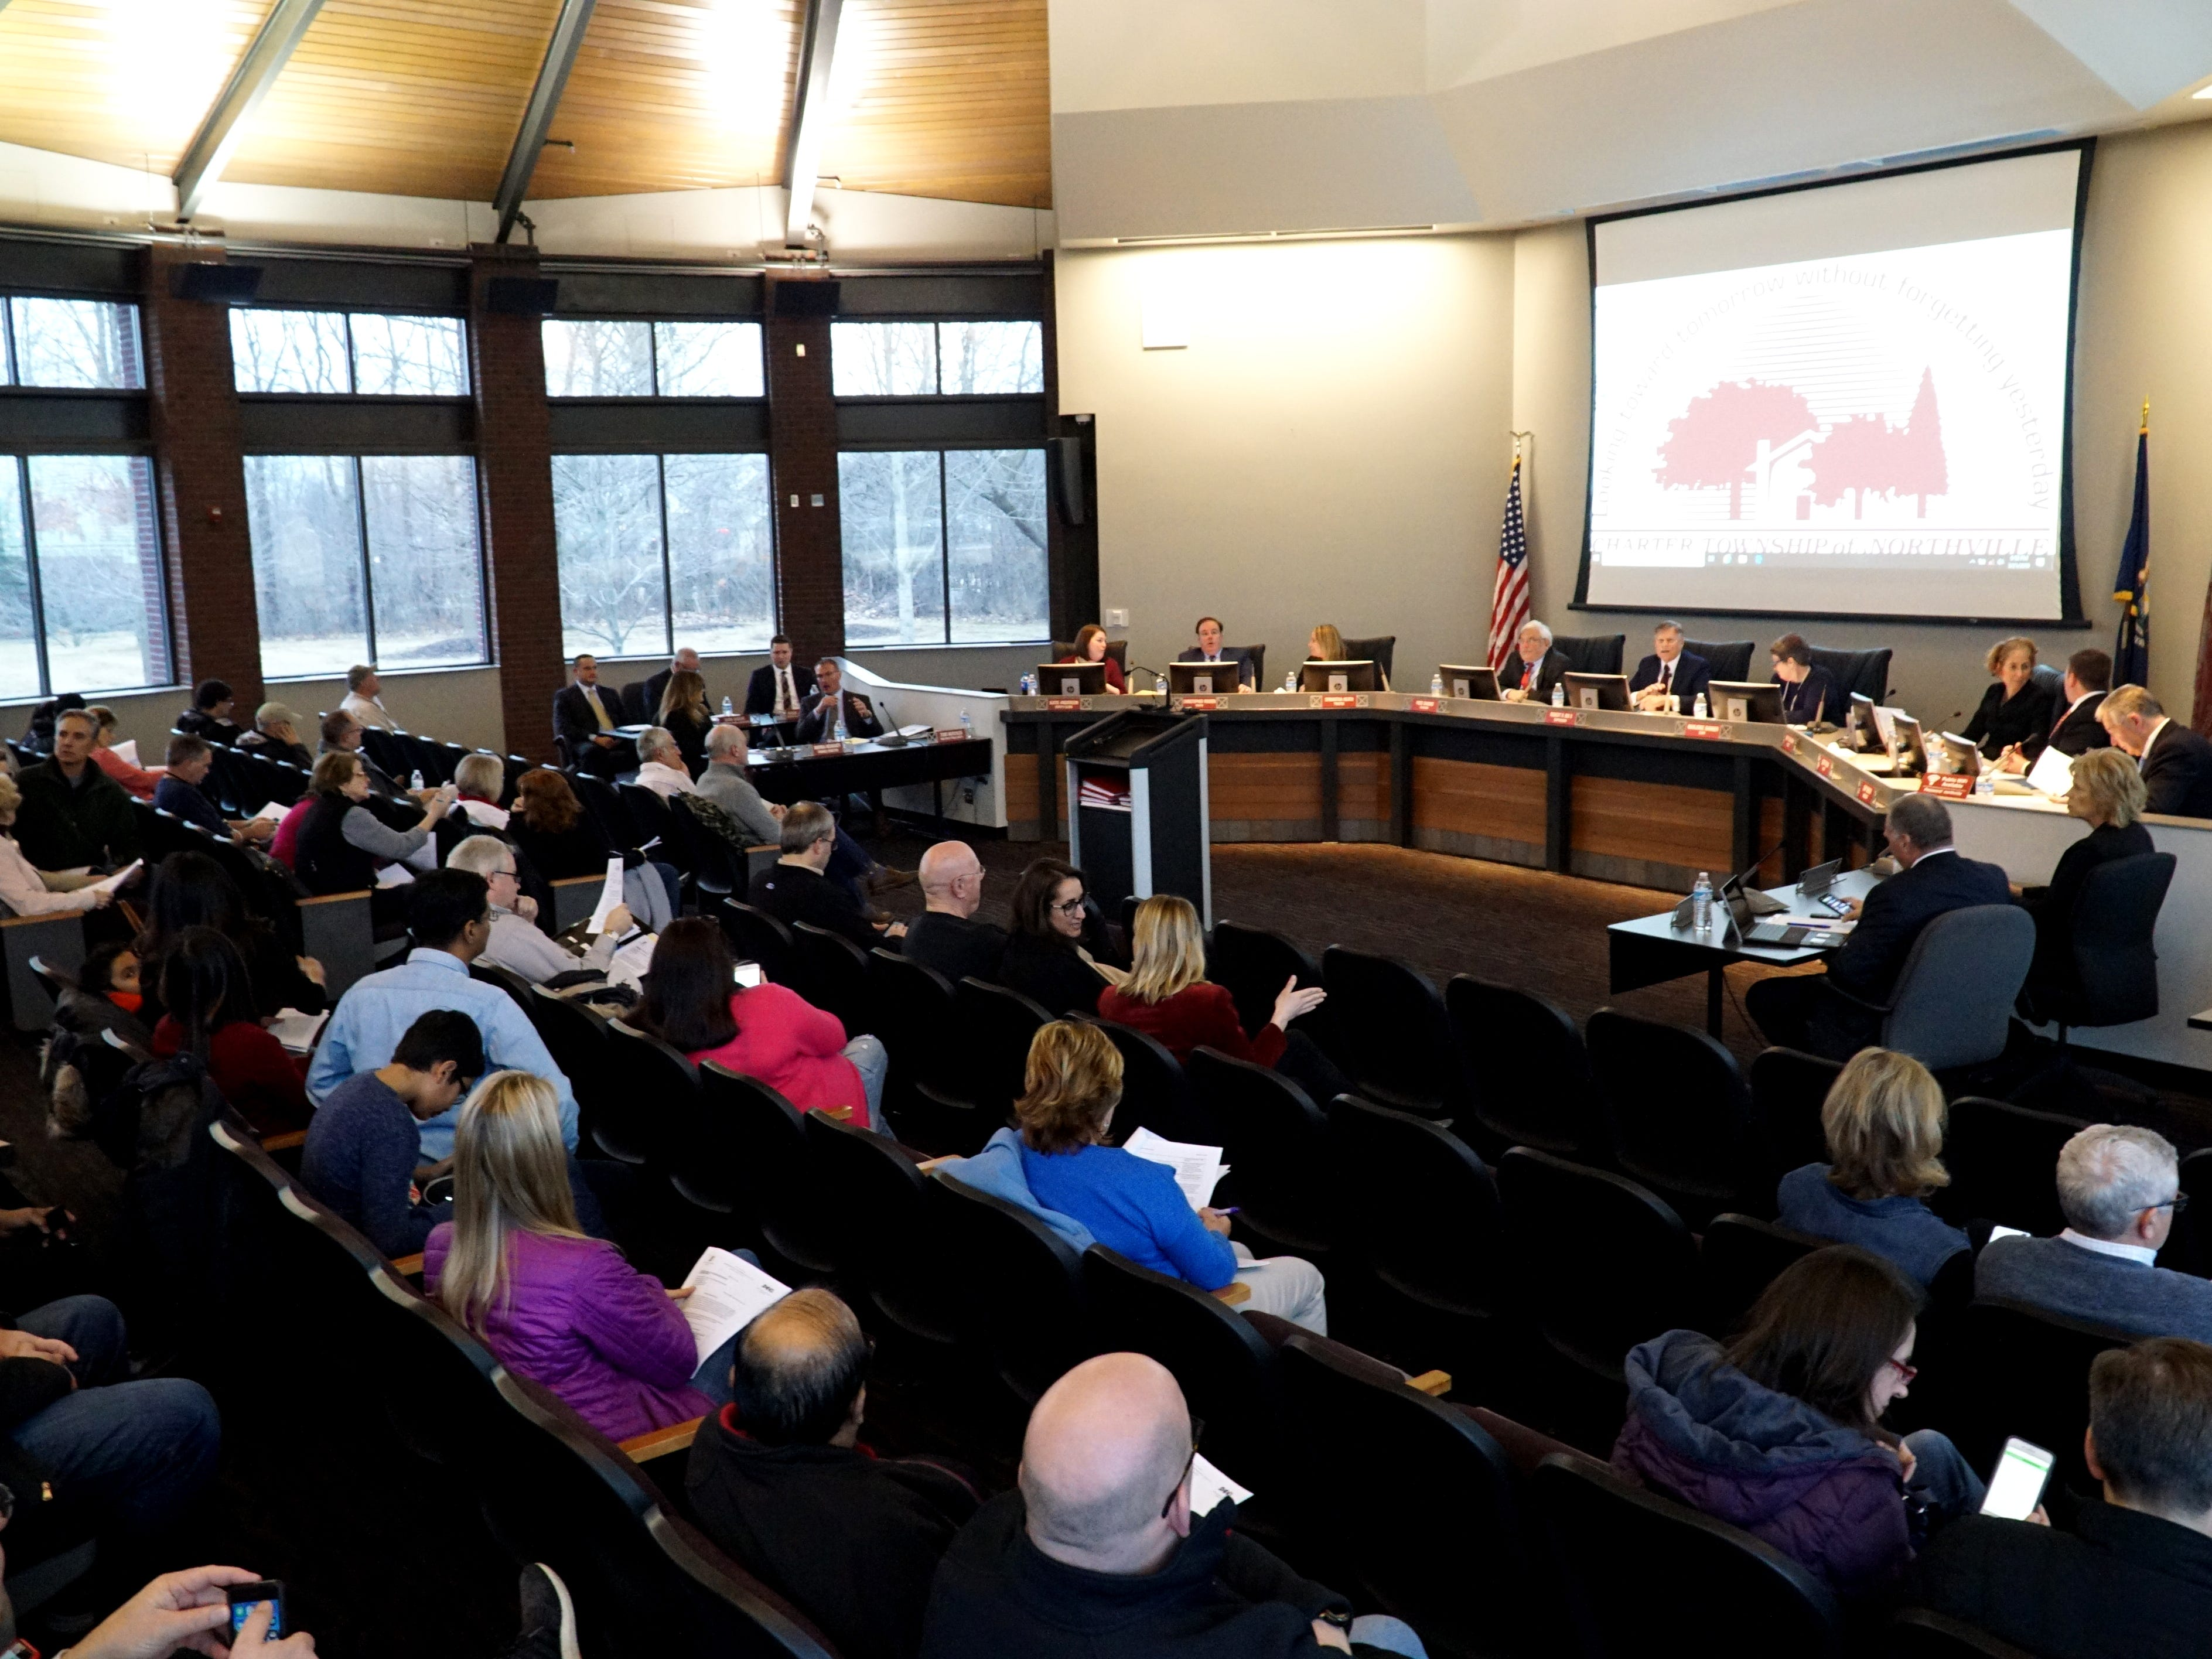 There was a good turnout for the March 21 Northville Township Trustees meeting - as many residents wanted to air their concerns about the landfill at Six and Napier.